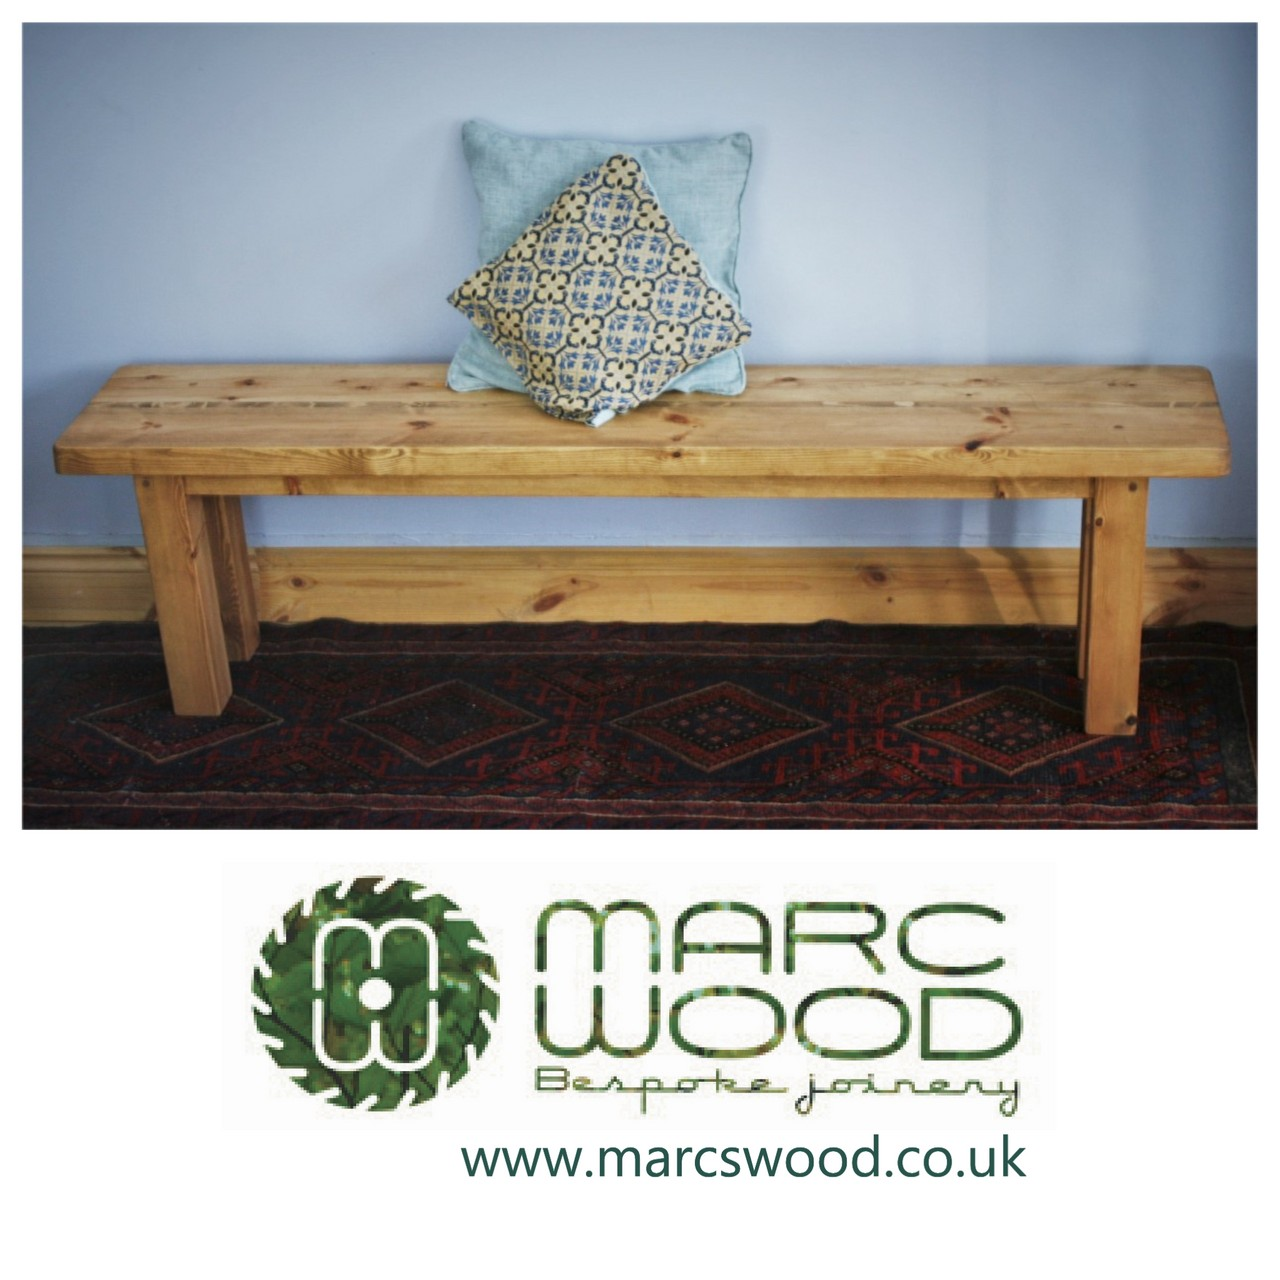 Our Latest Bench Seat Has Been Designed By Marc To Fit With Our Modern Rustic Furniture Collection Modern Rustic Furniture Handmade Furniture Furniture